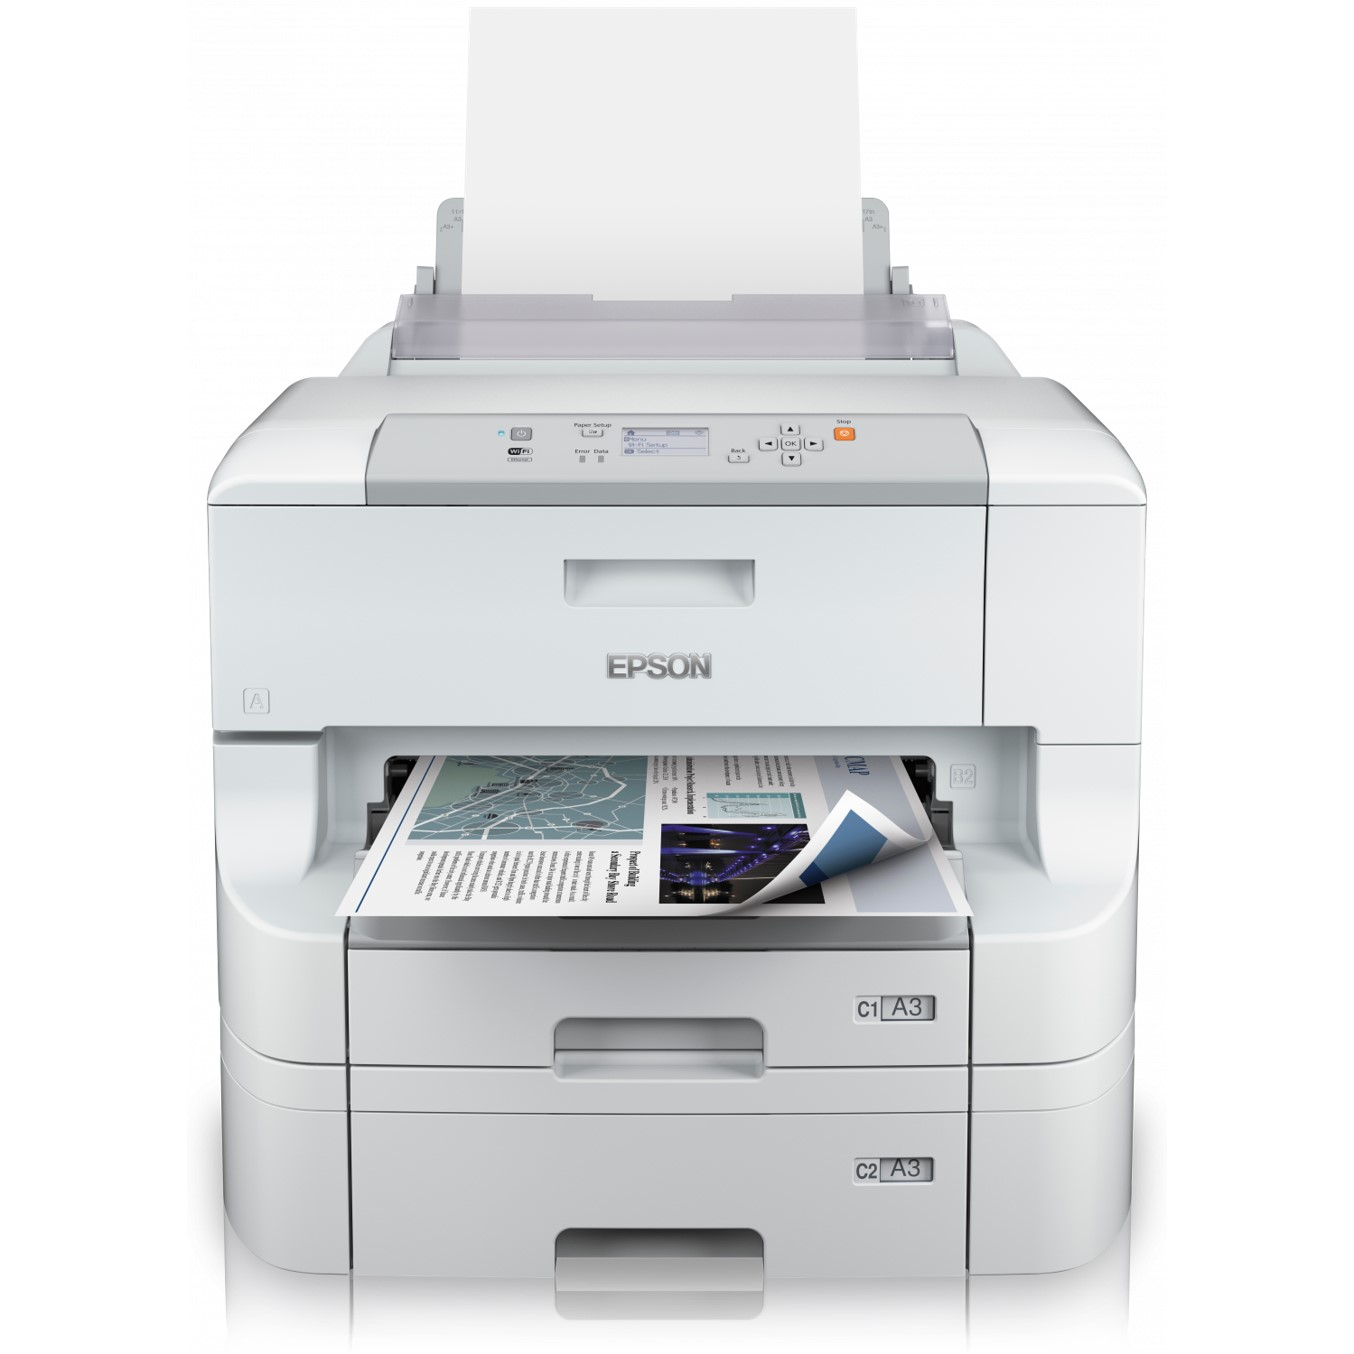 IMPRESORA EPSON INYECCION COLOR WF-8090DTWC WORKFORCE PRO A3+- 34PPM- USB- RED- WIFI- WIFI DIRECT- PDL- DUPLEX- 2 BANDEJAS